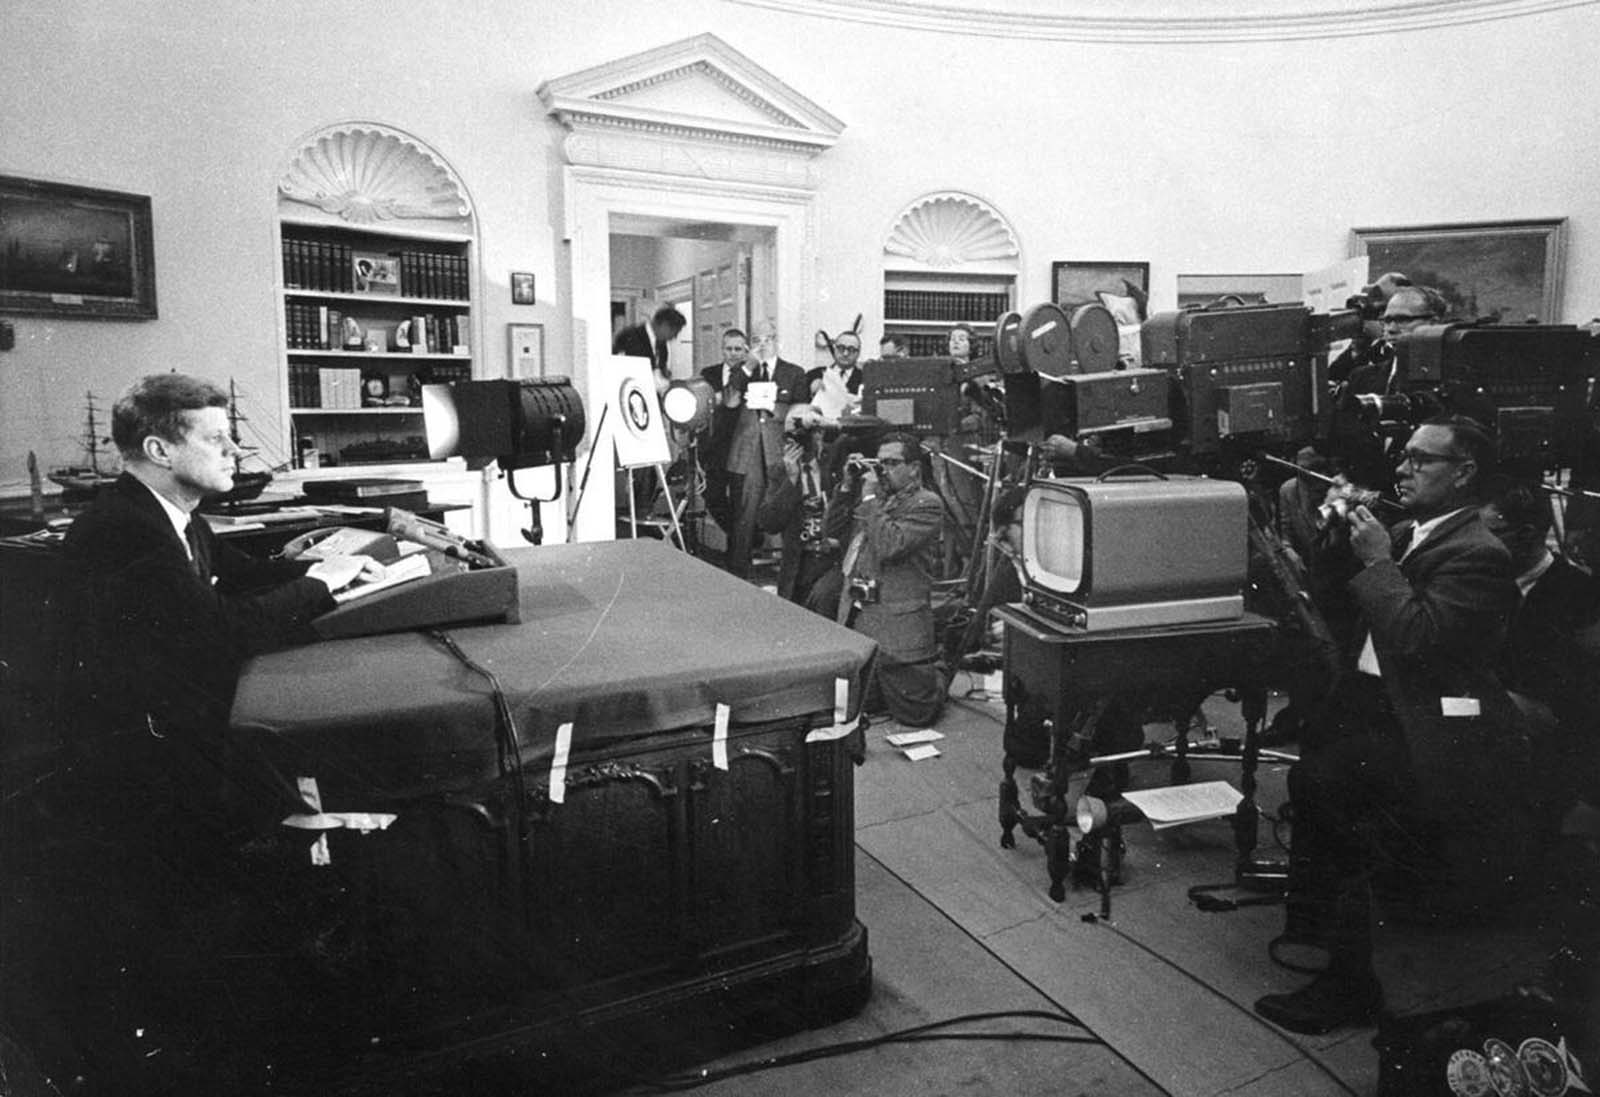 U.S. President John F. Kennedy speaks before reporters during a televised speech to the nation about the strategic blockade of Cuba, and his warning to the Soviet Union about missile sanctions, during the Cuban missile crisis, on October 24, 1962 in Washington, DC.